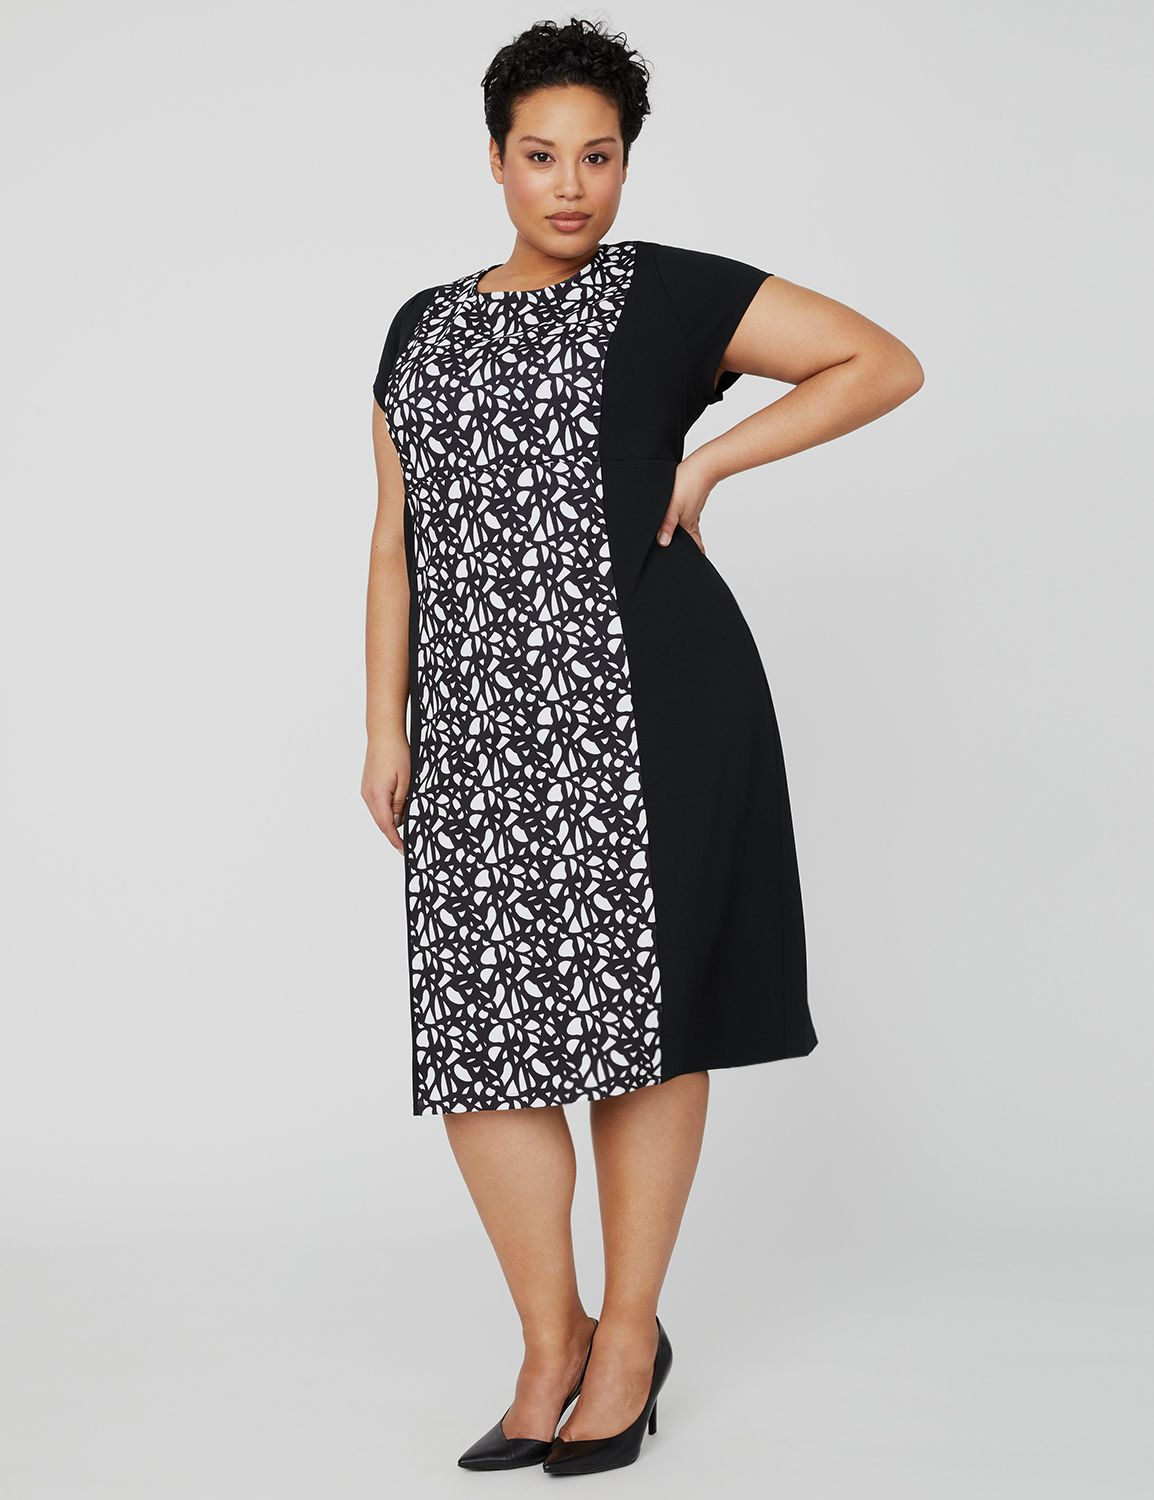 Mirage Crepe Dress 1091427 Printed Knit Crepe Dress MP-300100794